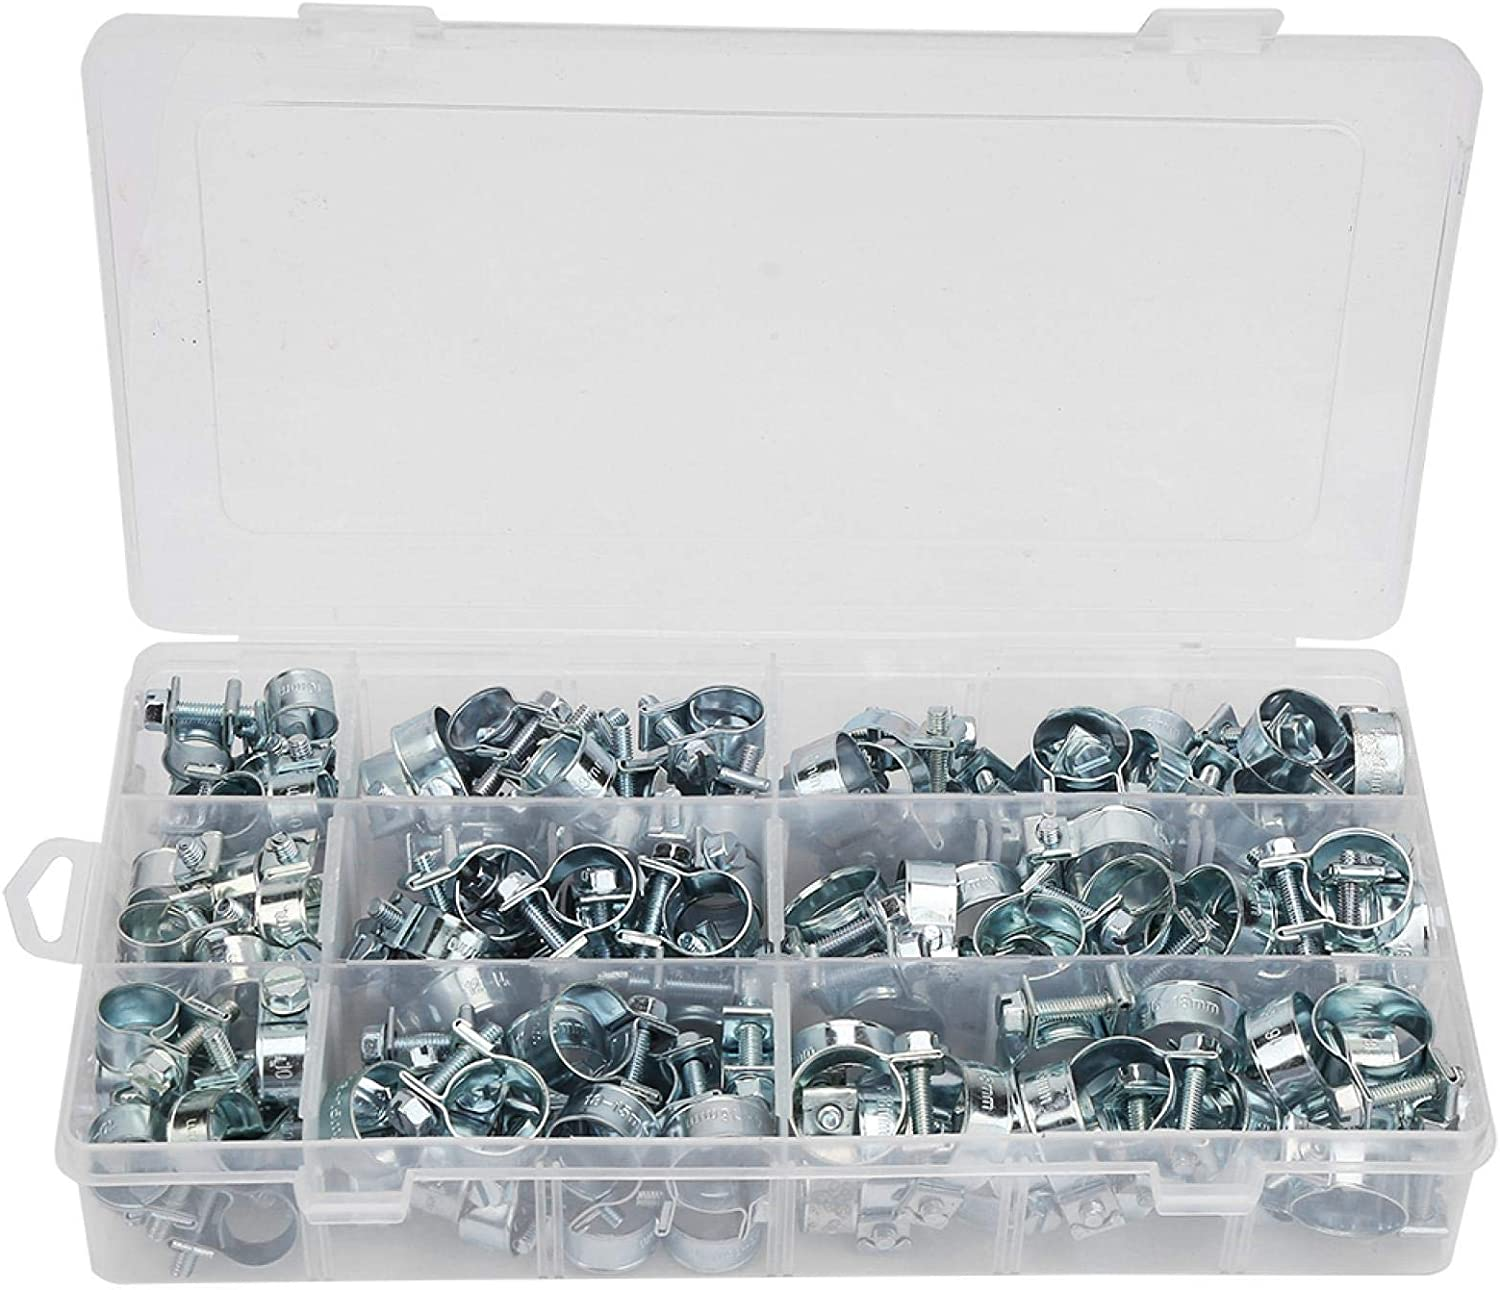 FECAMOS 135Pcs Fuel Pipe Clips Translated Luxury Clamps for Firm Lock Hose